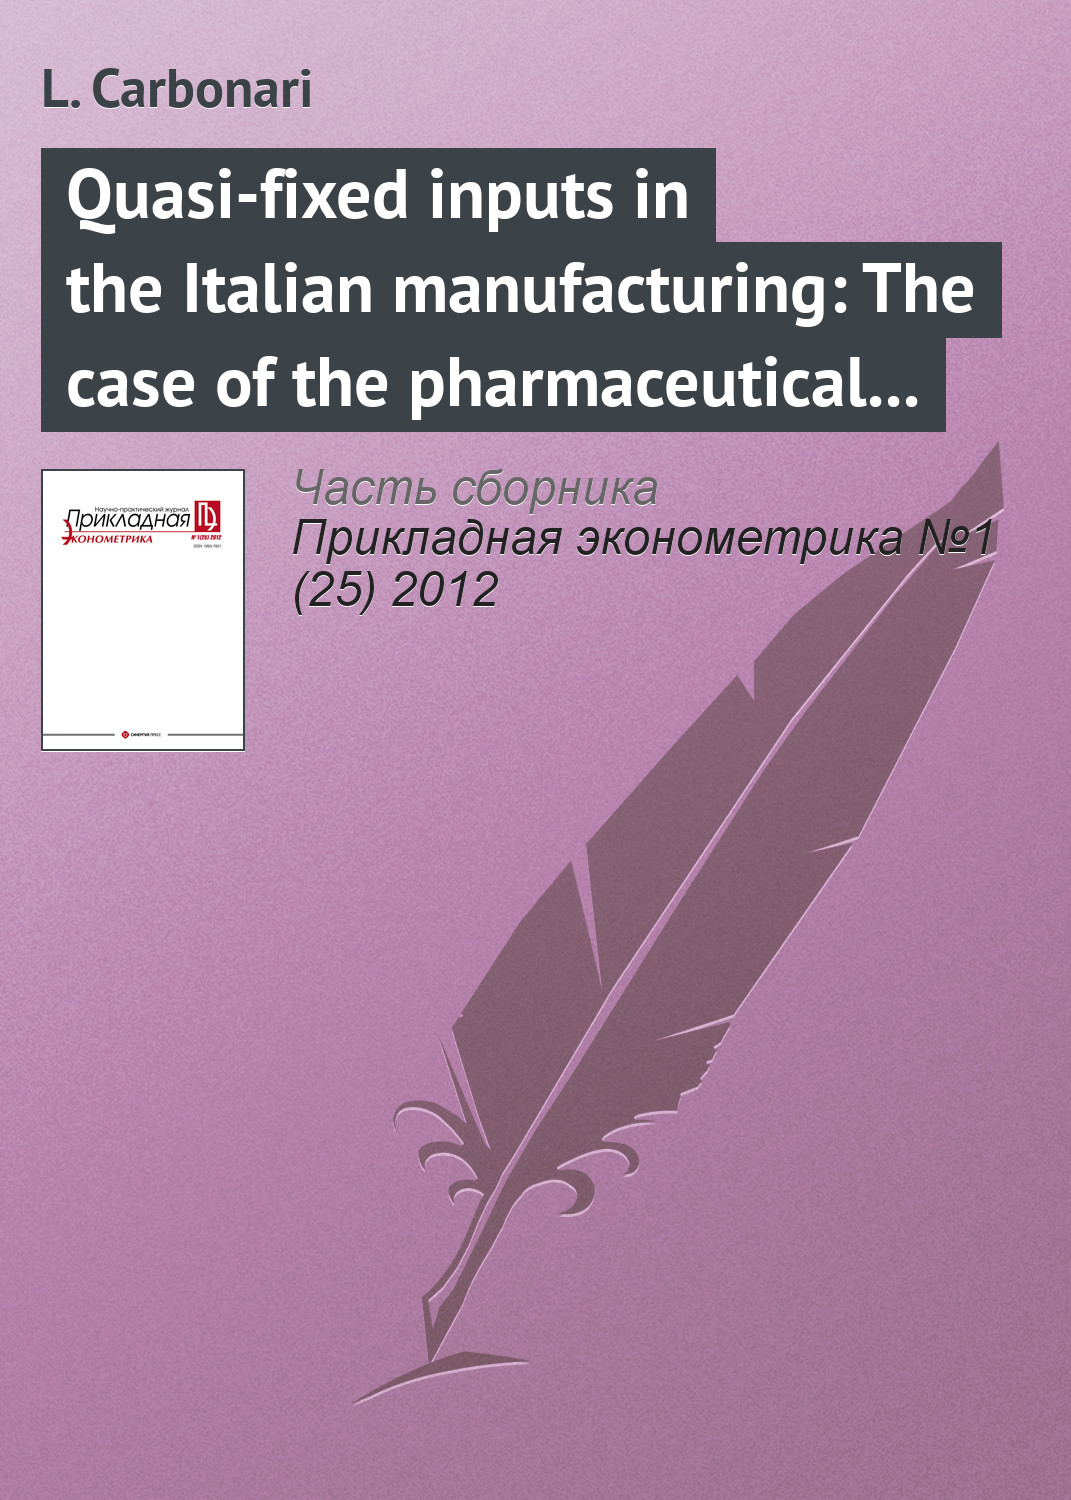 L. Carbonari Quasi-fixed inputs in the Italian manufacturing: The case of the pharmaceutical industry orthopaedic hip fixed set of hipbone hip gear leg femur fractures with a fixed orthopaedic rehabilitation